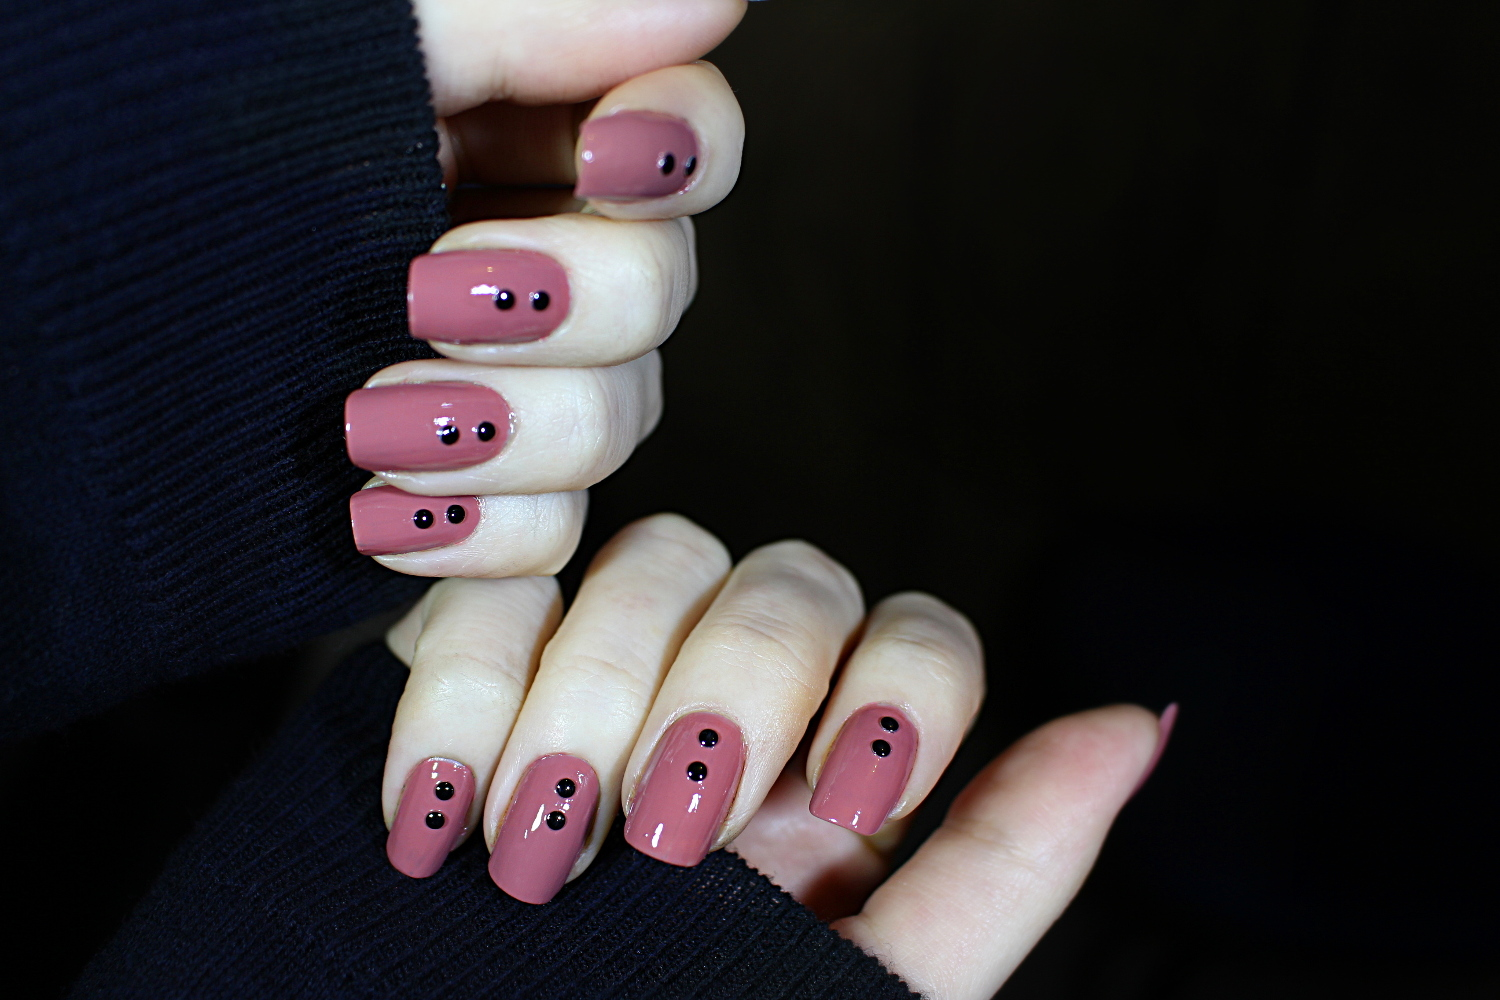 MINIMALIST PUNK MANICURE FOR SHORT NAILS | HOW TO USE NAIL ART STUDS ...